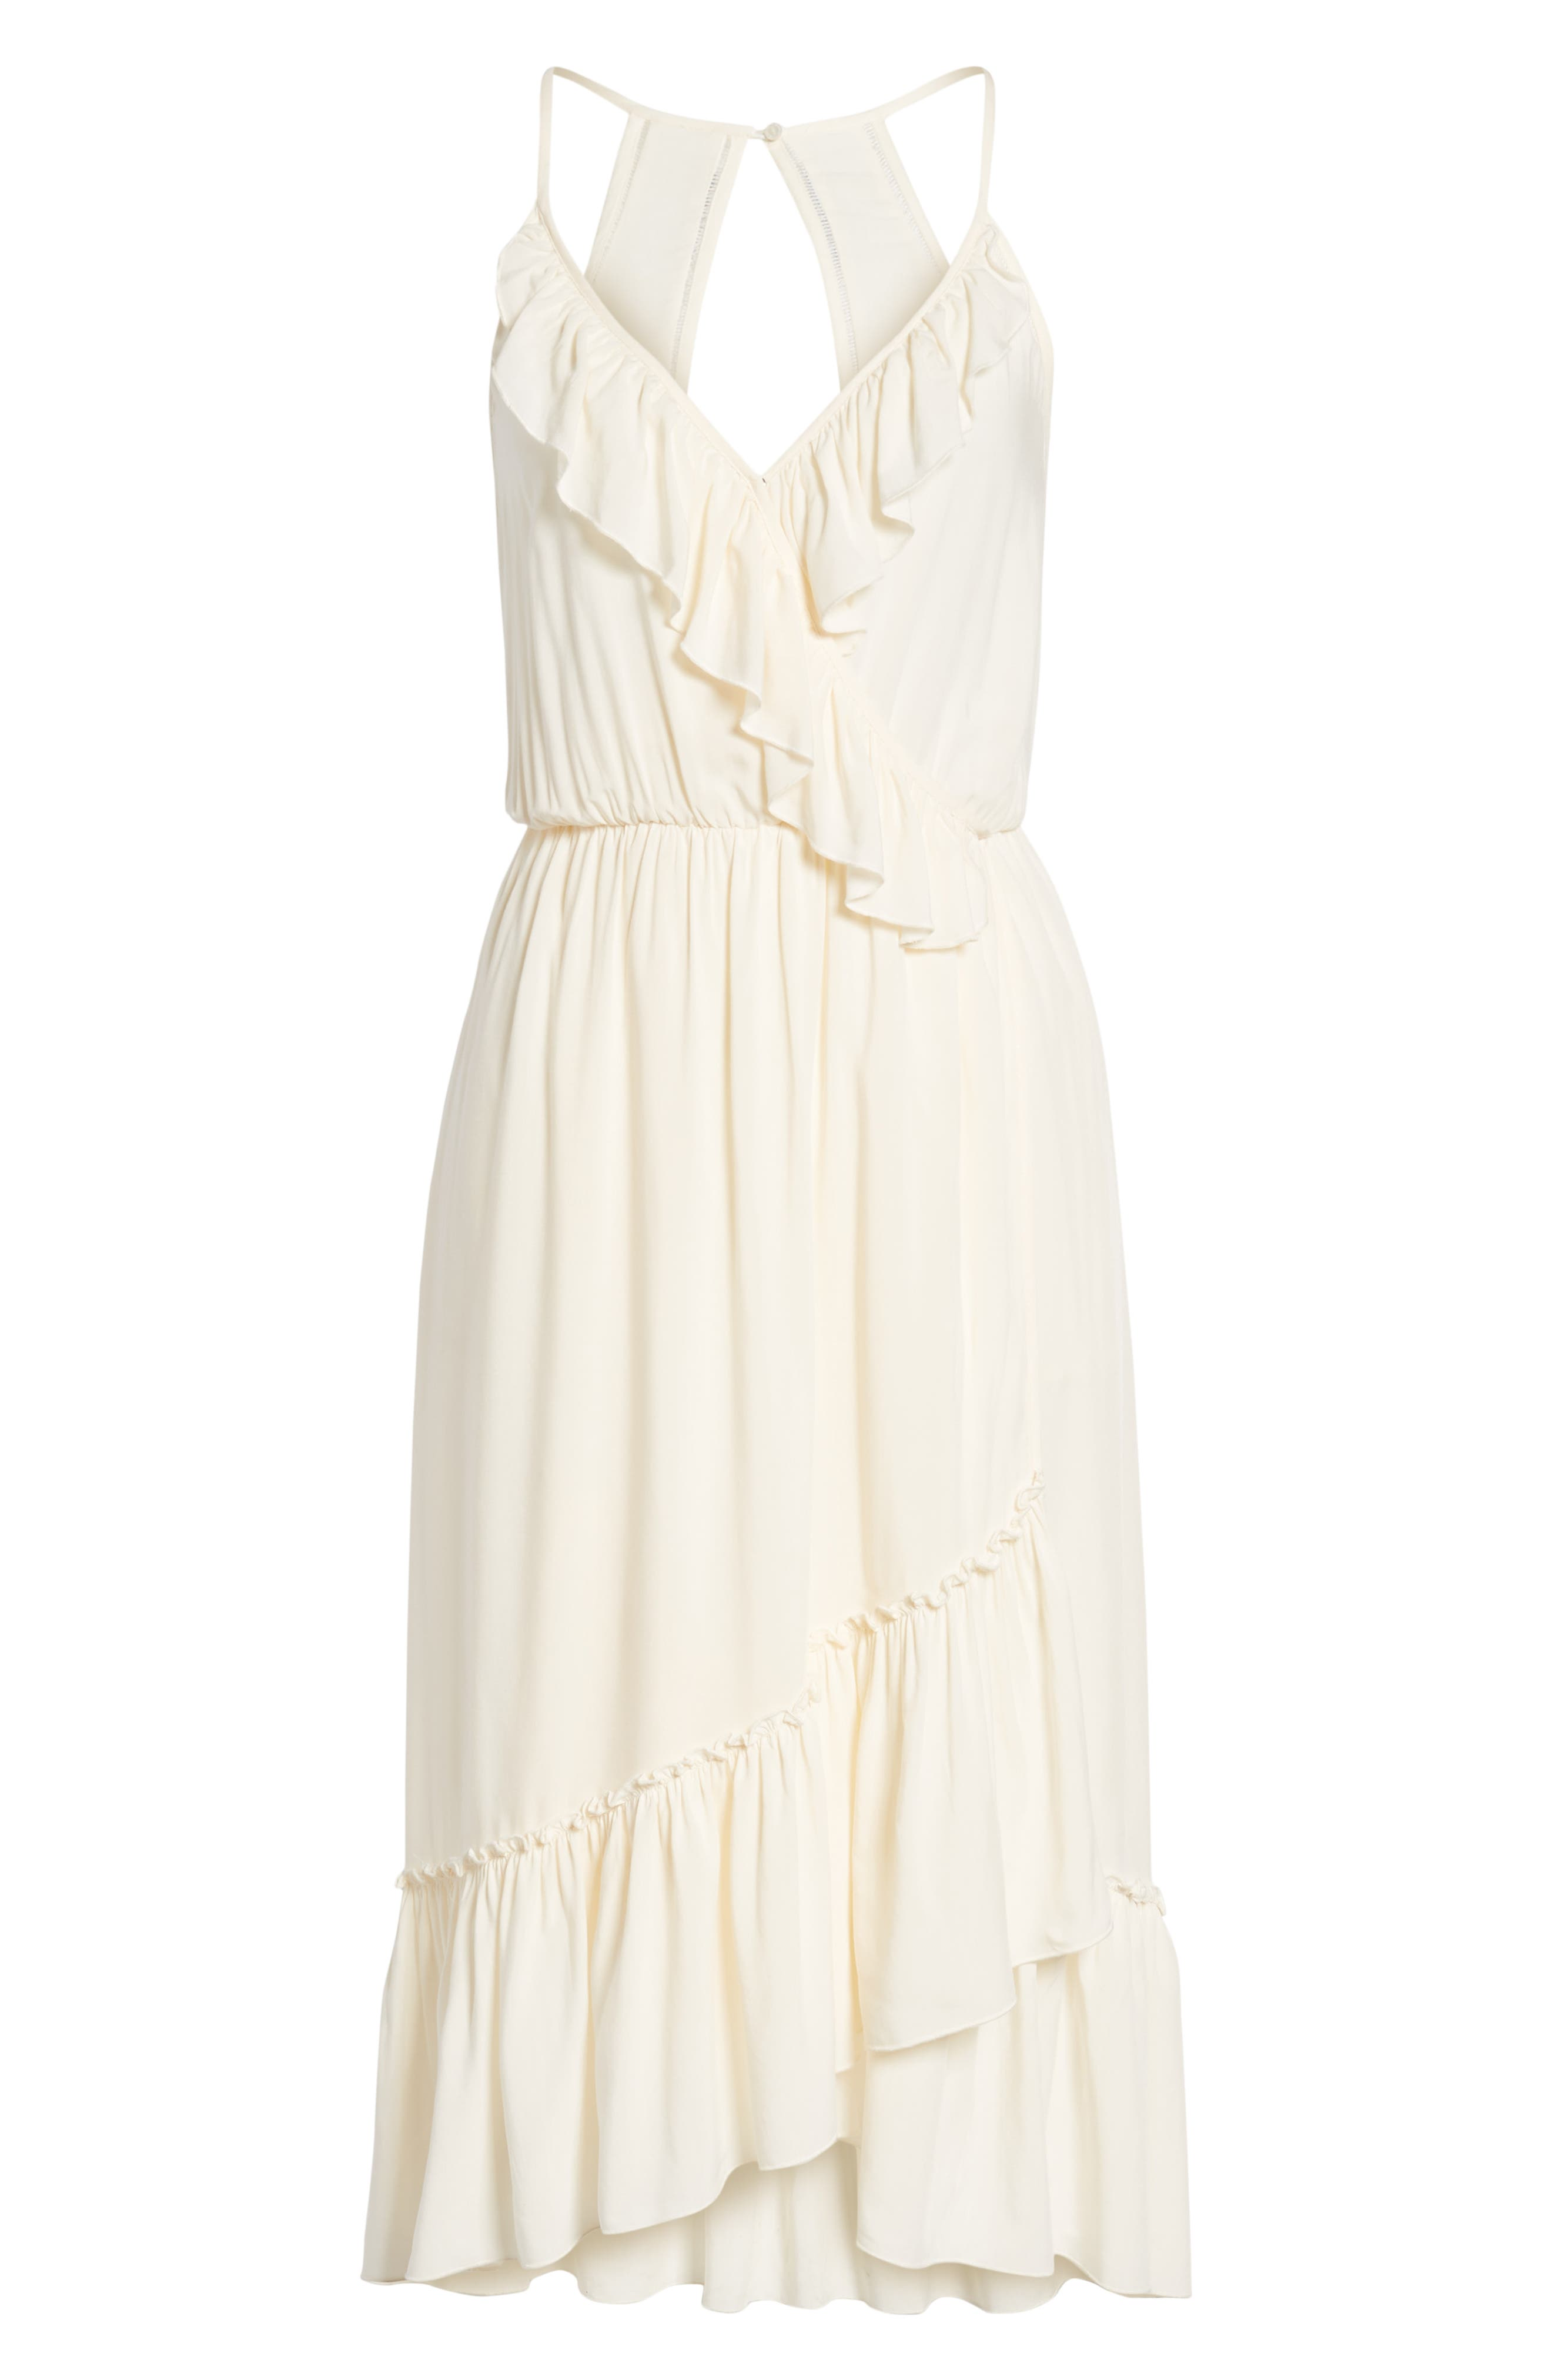 Wrap Style Midi Dress,                             Alternate thumbnail 7, color,                             COLOR 01 OFF WHITE